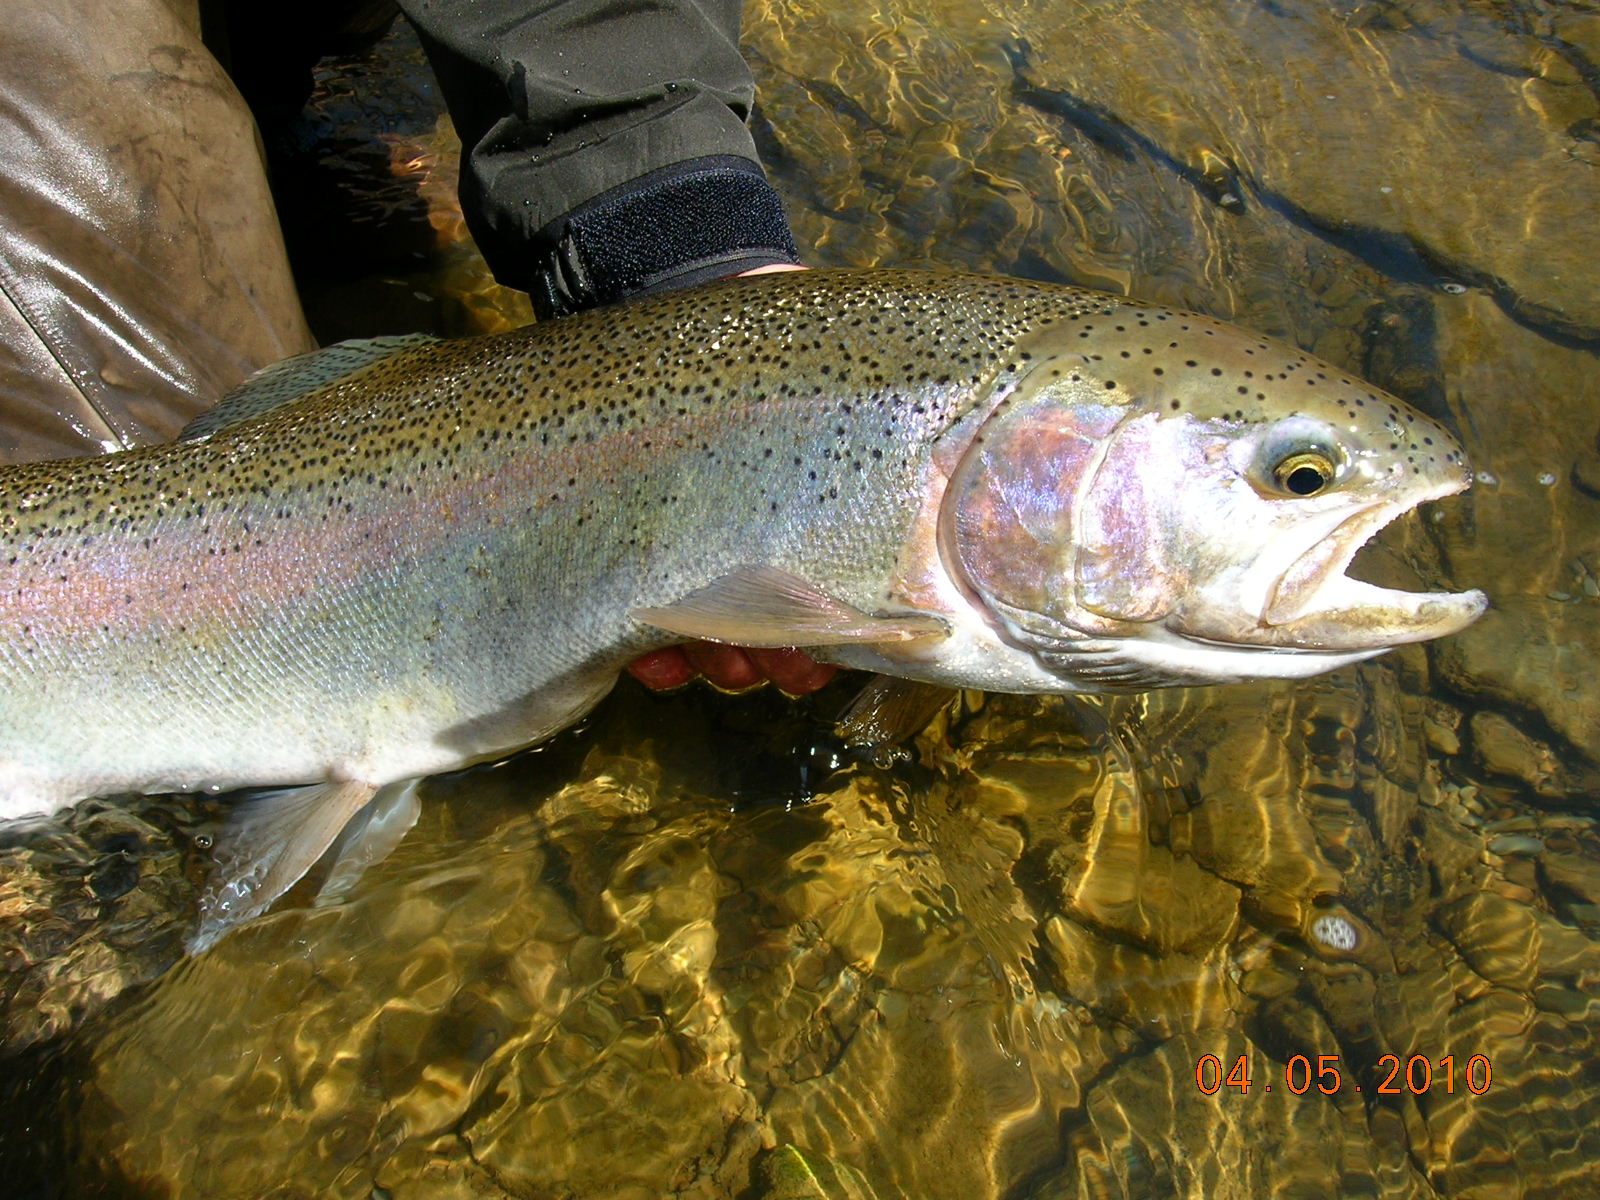 Steelhead alley outfitters lake erie fly fishing guide for Ohio river fish